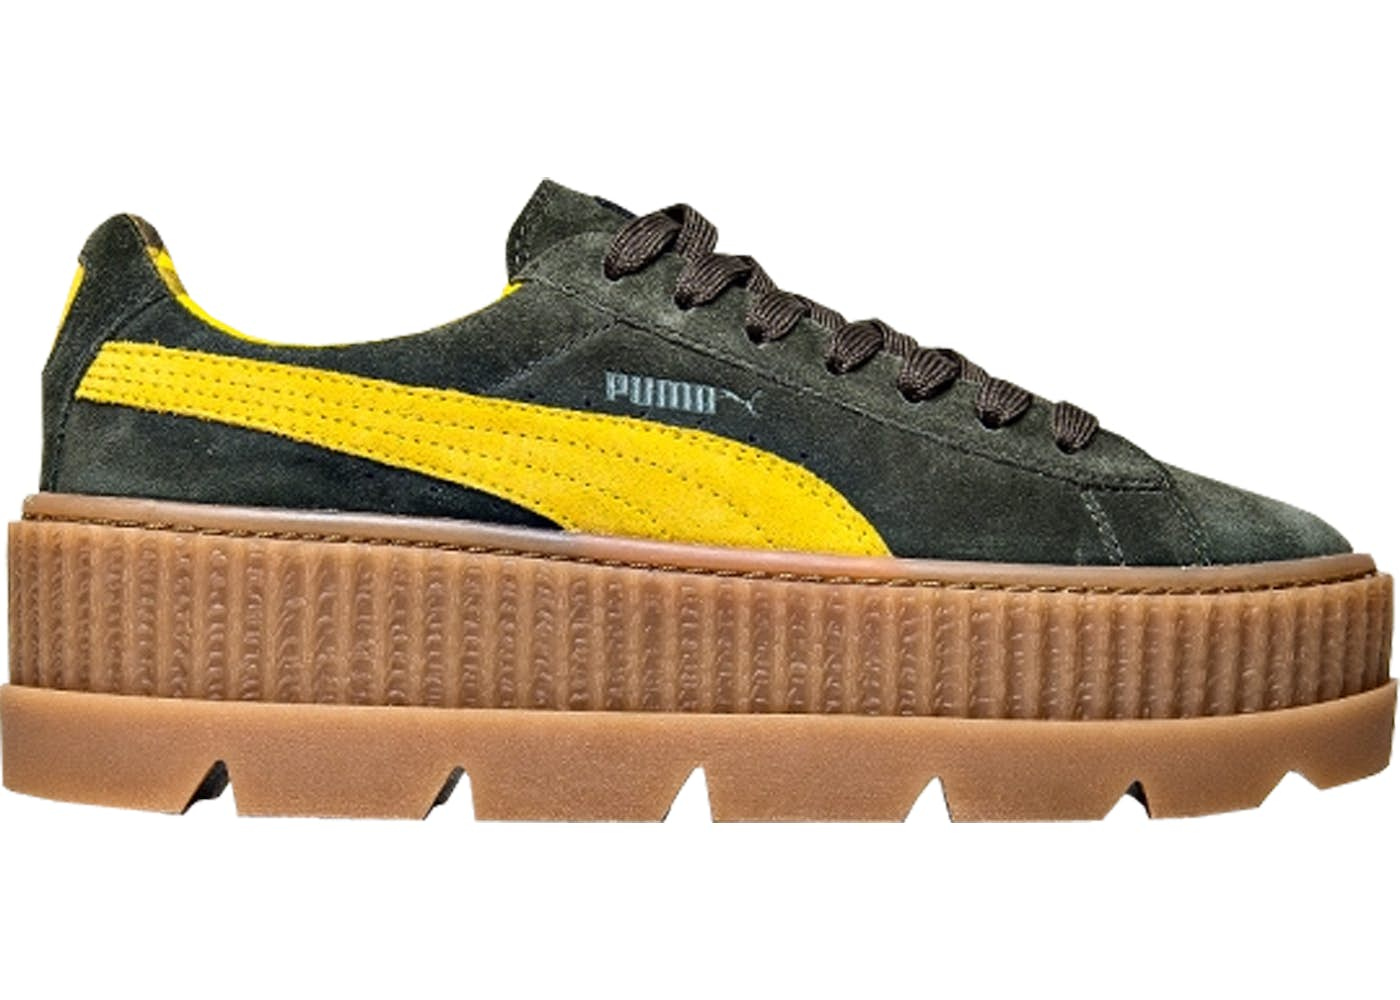 Cleated creeper rihanna fenty suede green w puma cleated creeper rihanna fenty suede green w voltagebd Image collections